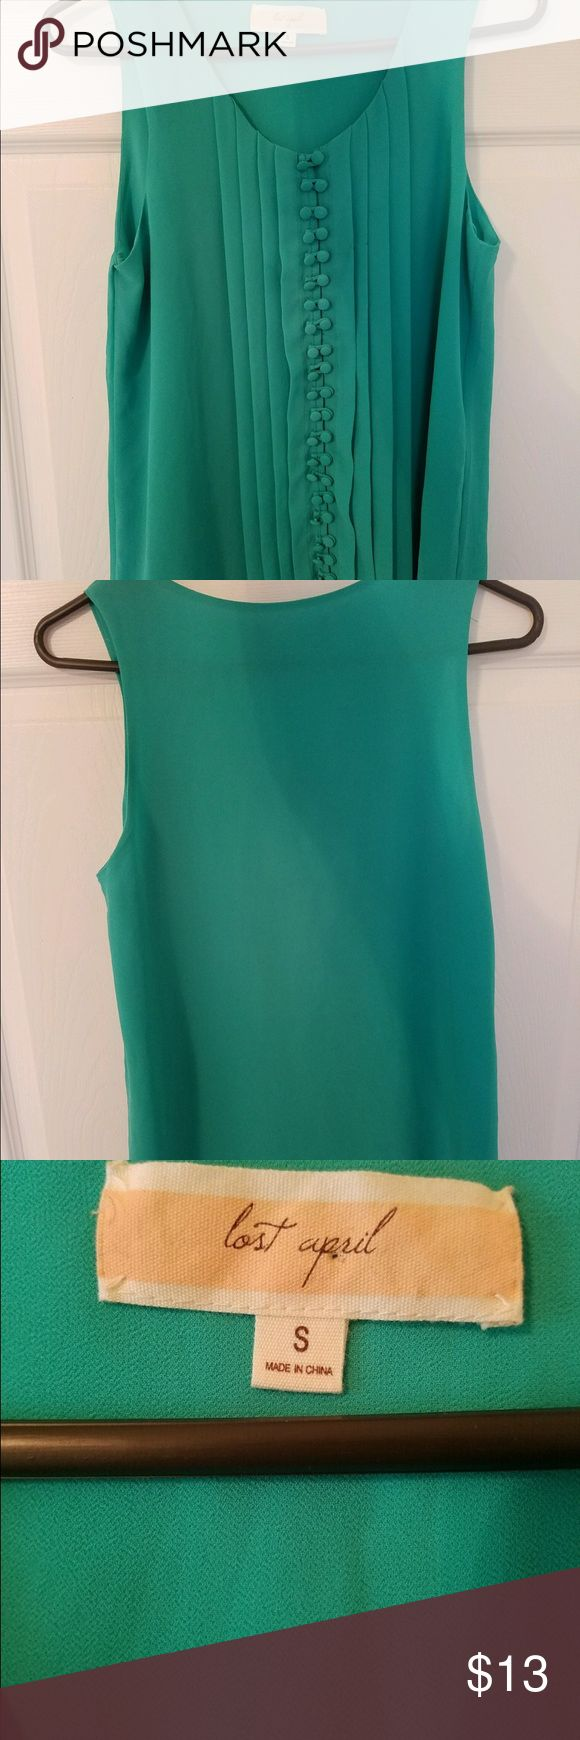 Cute Kelly green tank from Apricot Lane! Stinking cute top from Apricot Lane with button detailing and pleats along the front. Kelly green, size small! Lost April Tops Tank Tops